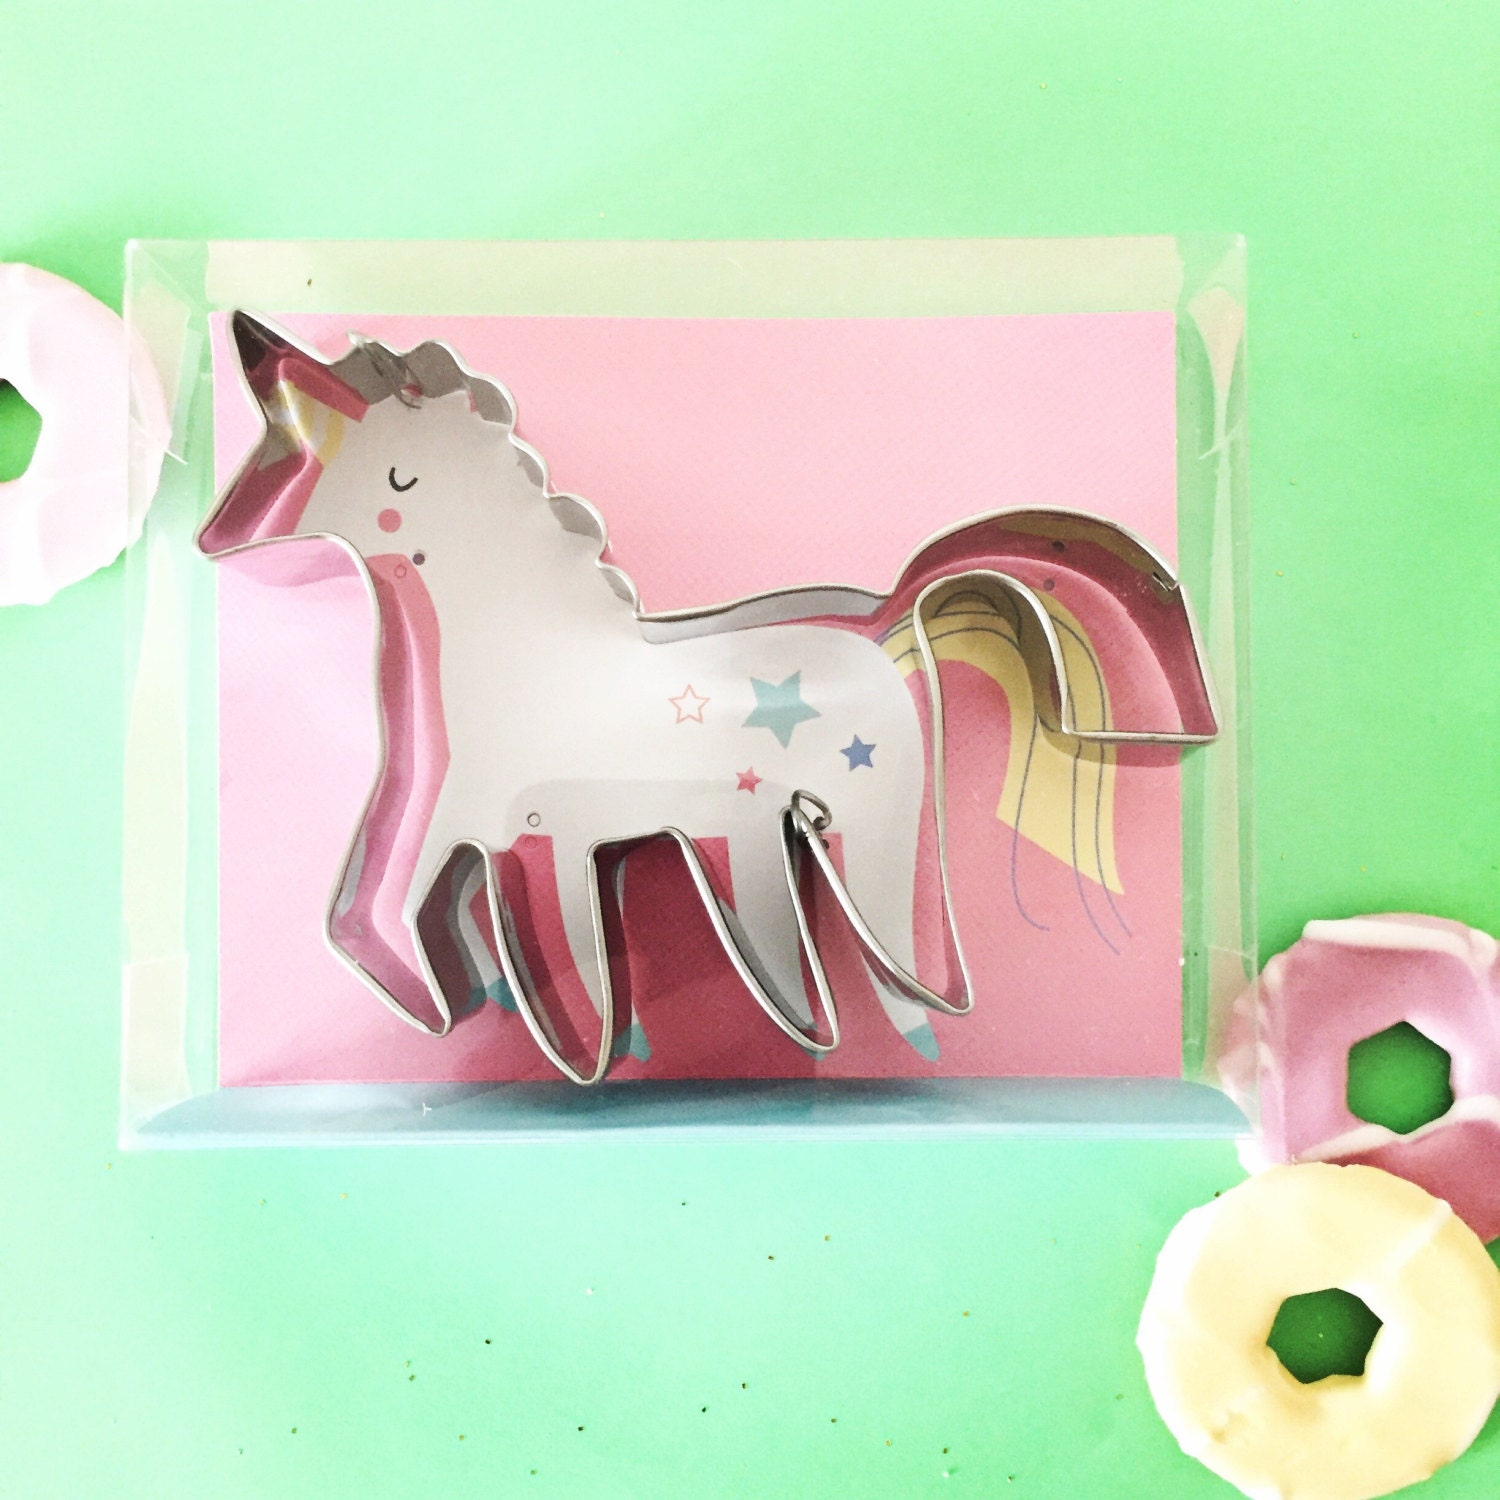 Unicorn Cookie Cutters Stainless Steel Magical Beast Creature